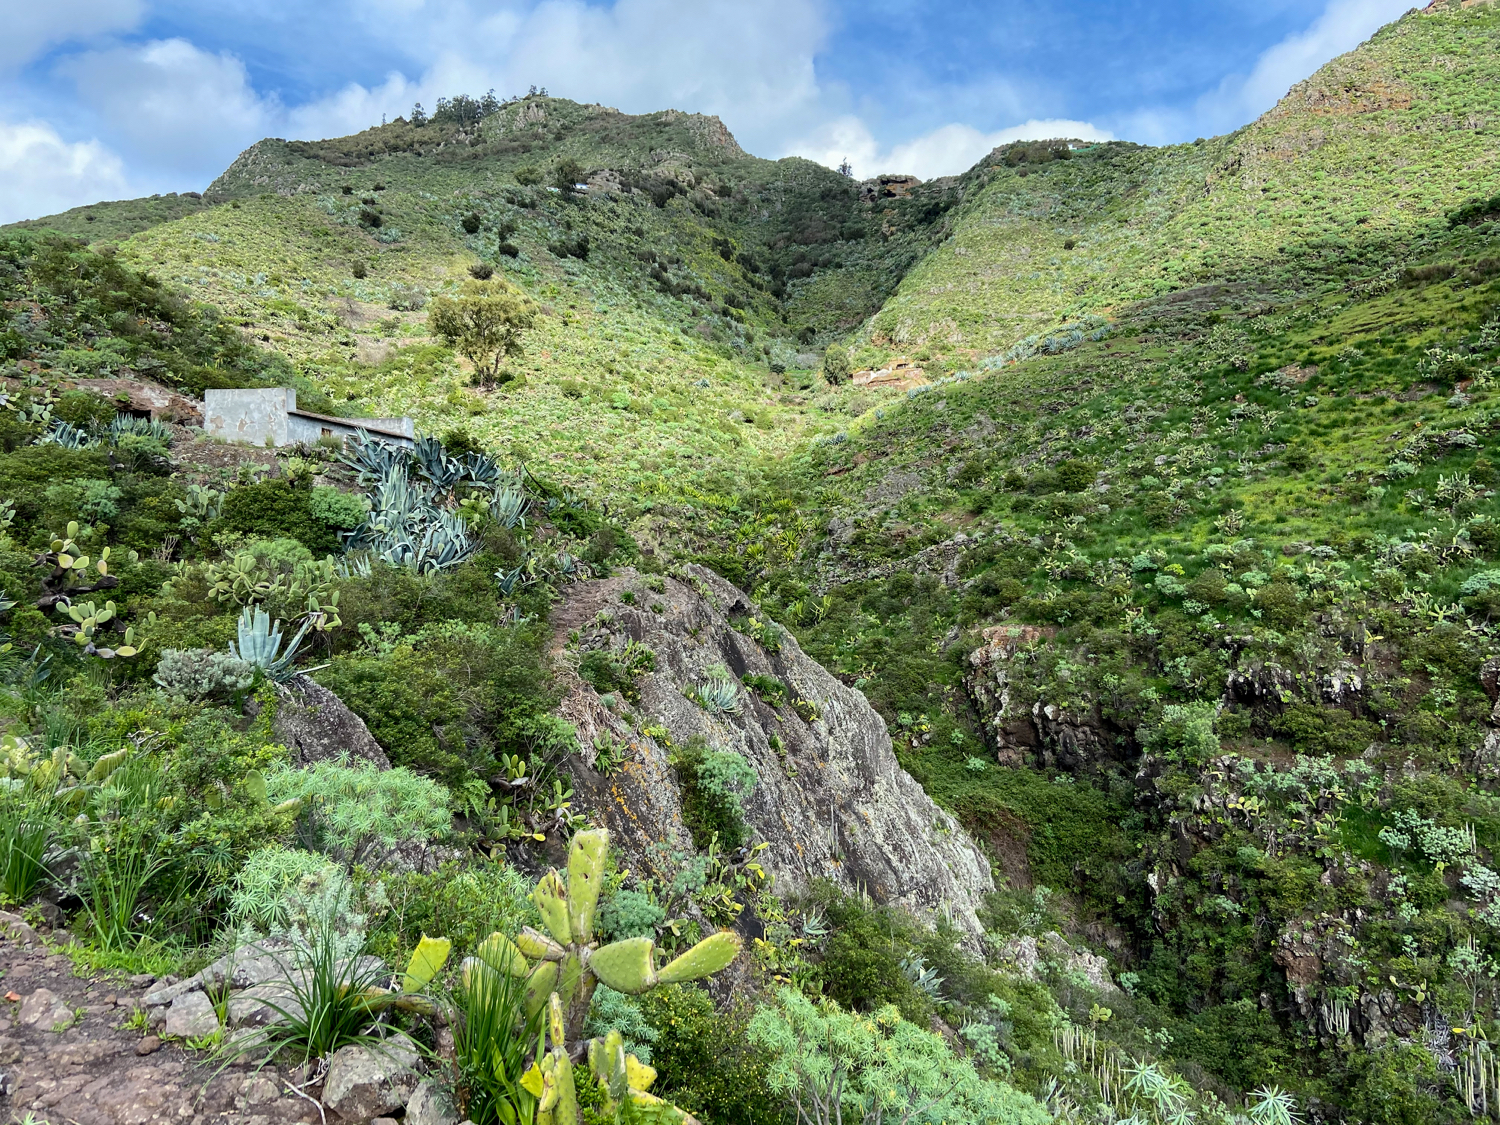 Hiking trail uphill in the Barranco de Valle Luis